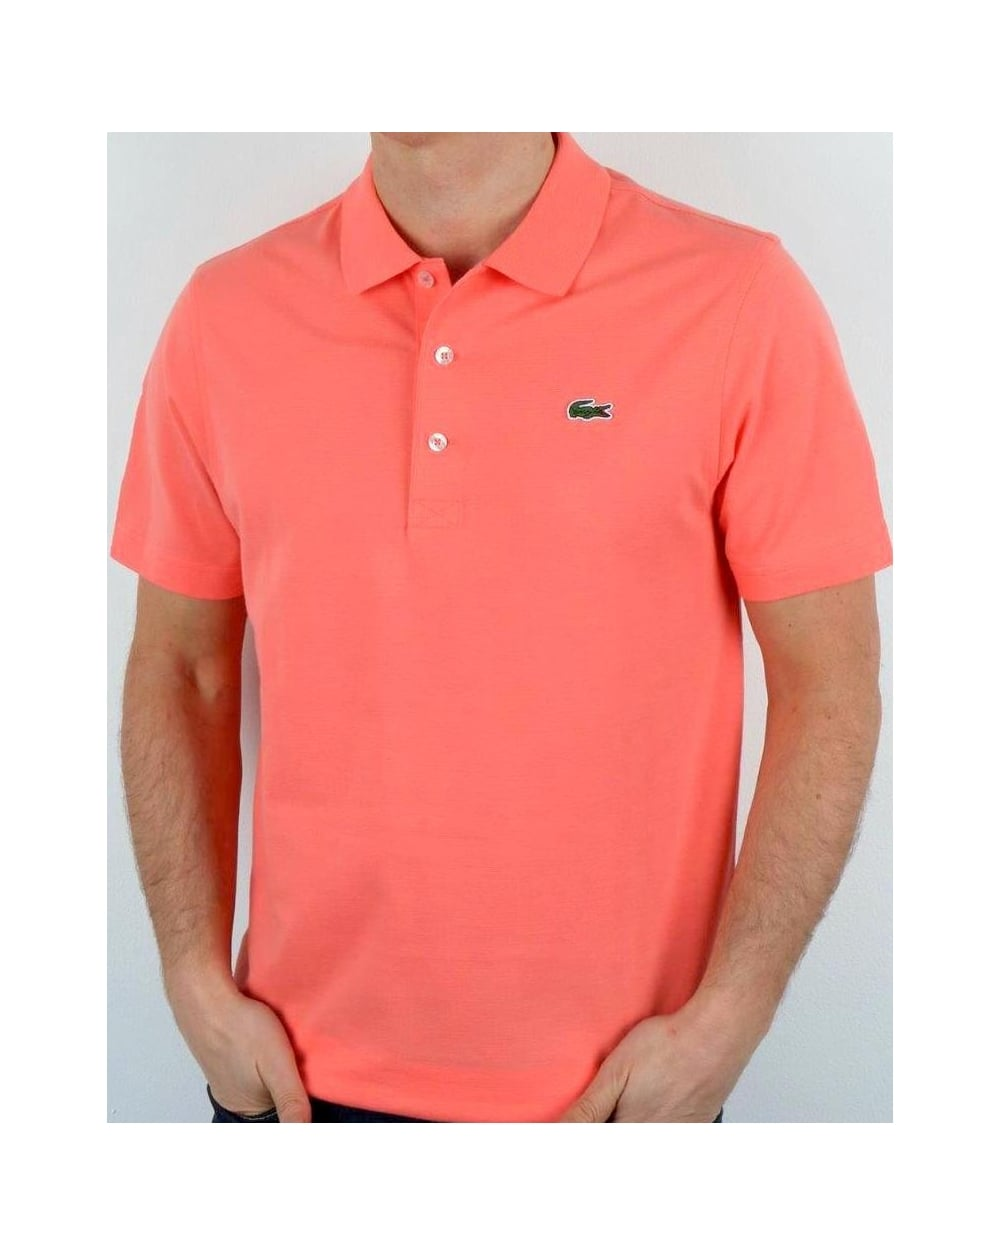 c174b9dcc4f33 Lacoste Ultra-lightweight Knit Polo Shirt Tarama Pink, Men s, Top